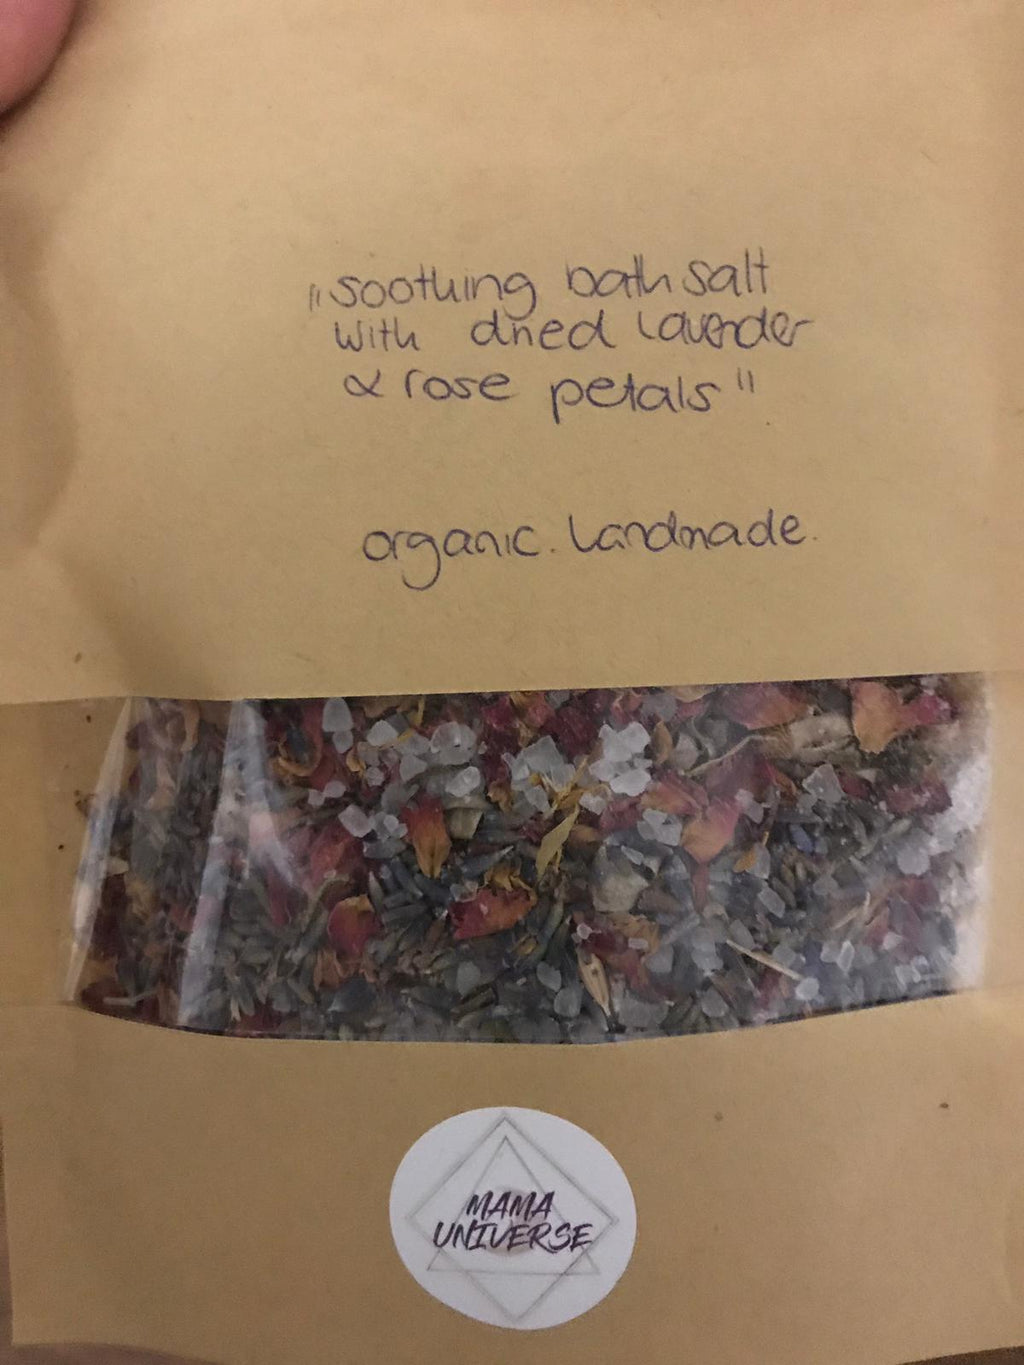 Mama Universe Hydrotherapy: soothing salt Bath Blend lavender rose petals handmade organic